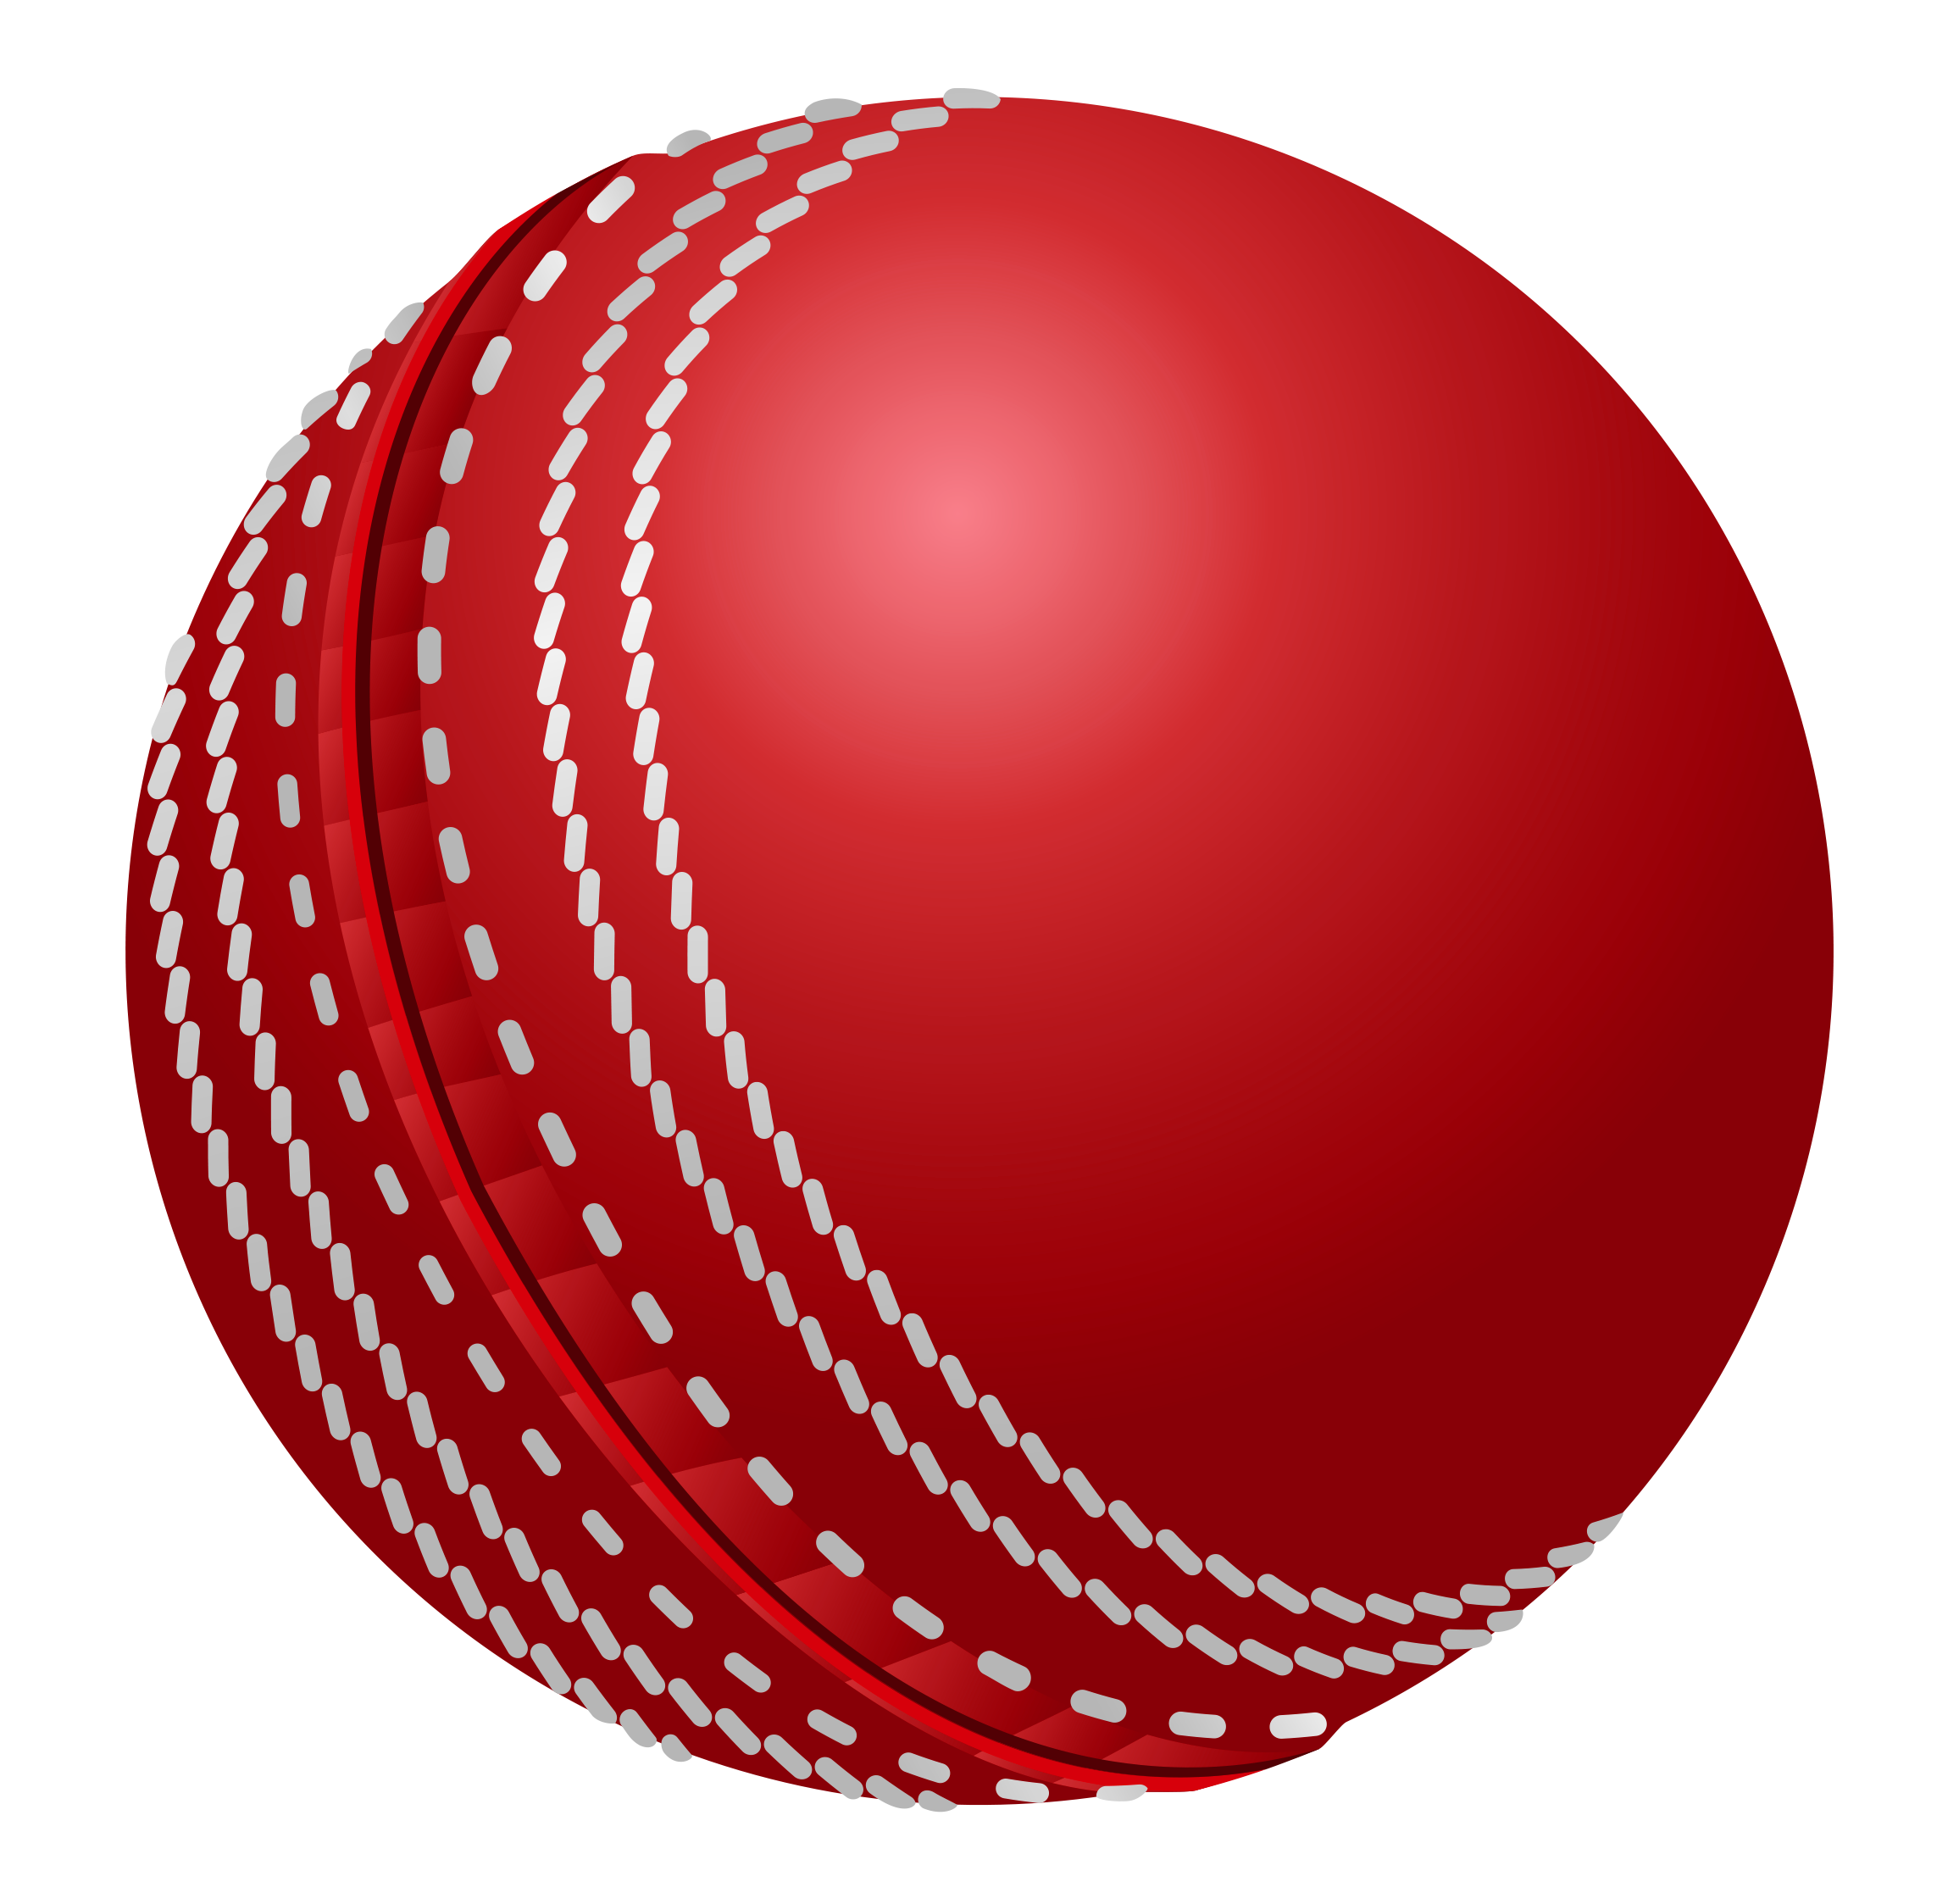 Cricket ball png. Clipart picture gallery yopriceville